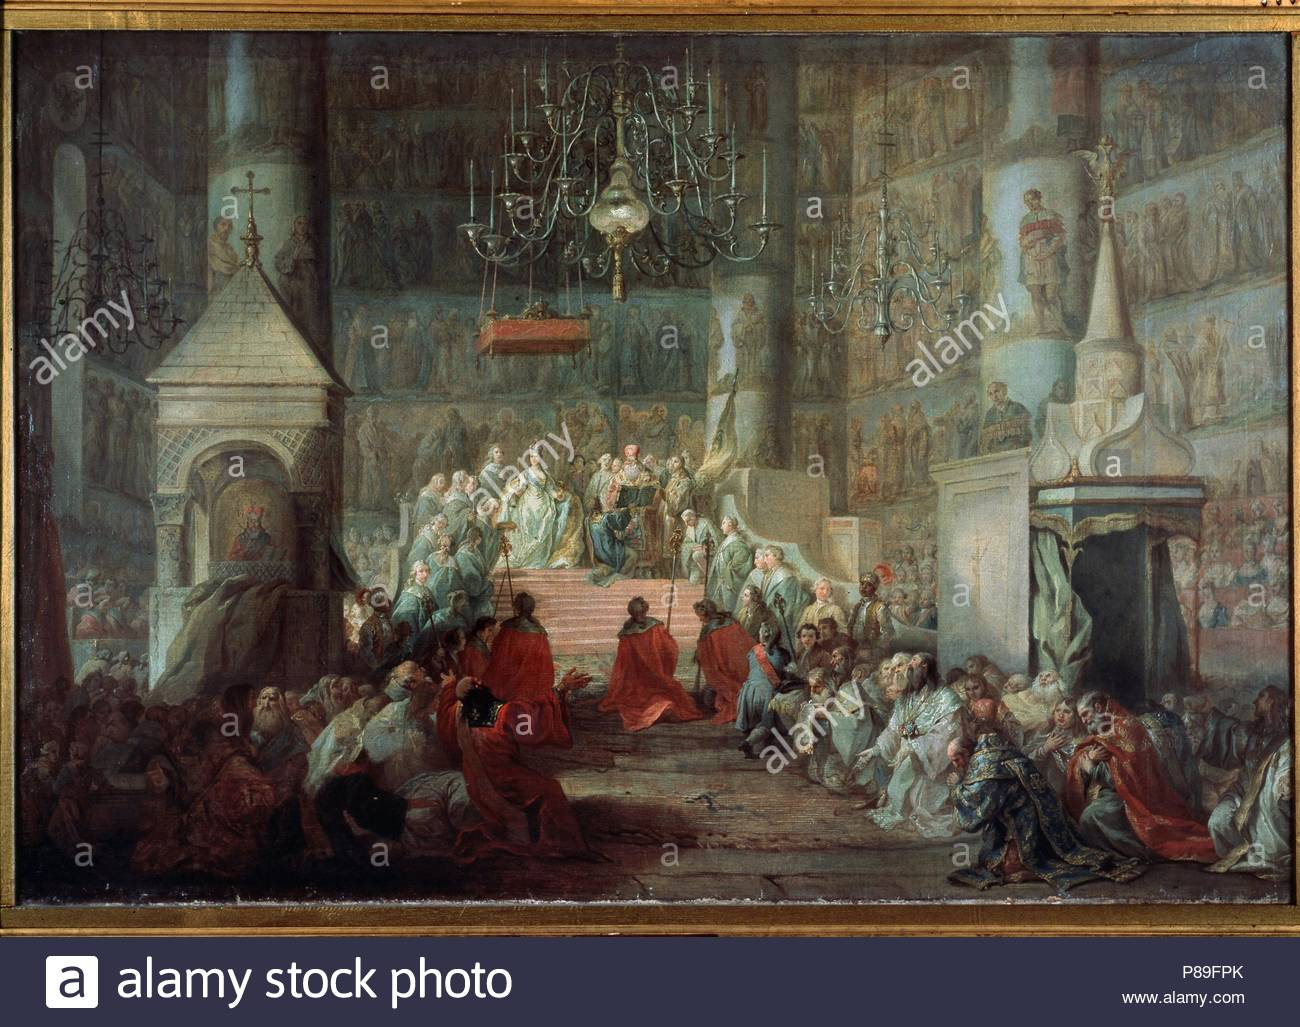 The Coronation of the Empress Catherine II of Russia on 12 September 1762.  Museum: State Tretyakov Gallery, Moscow.